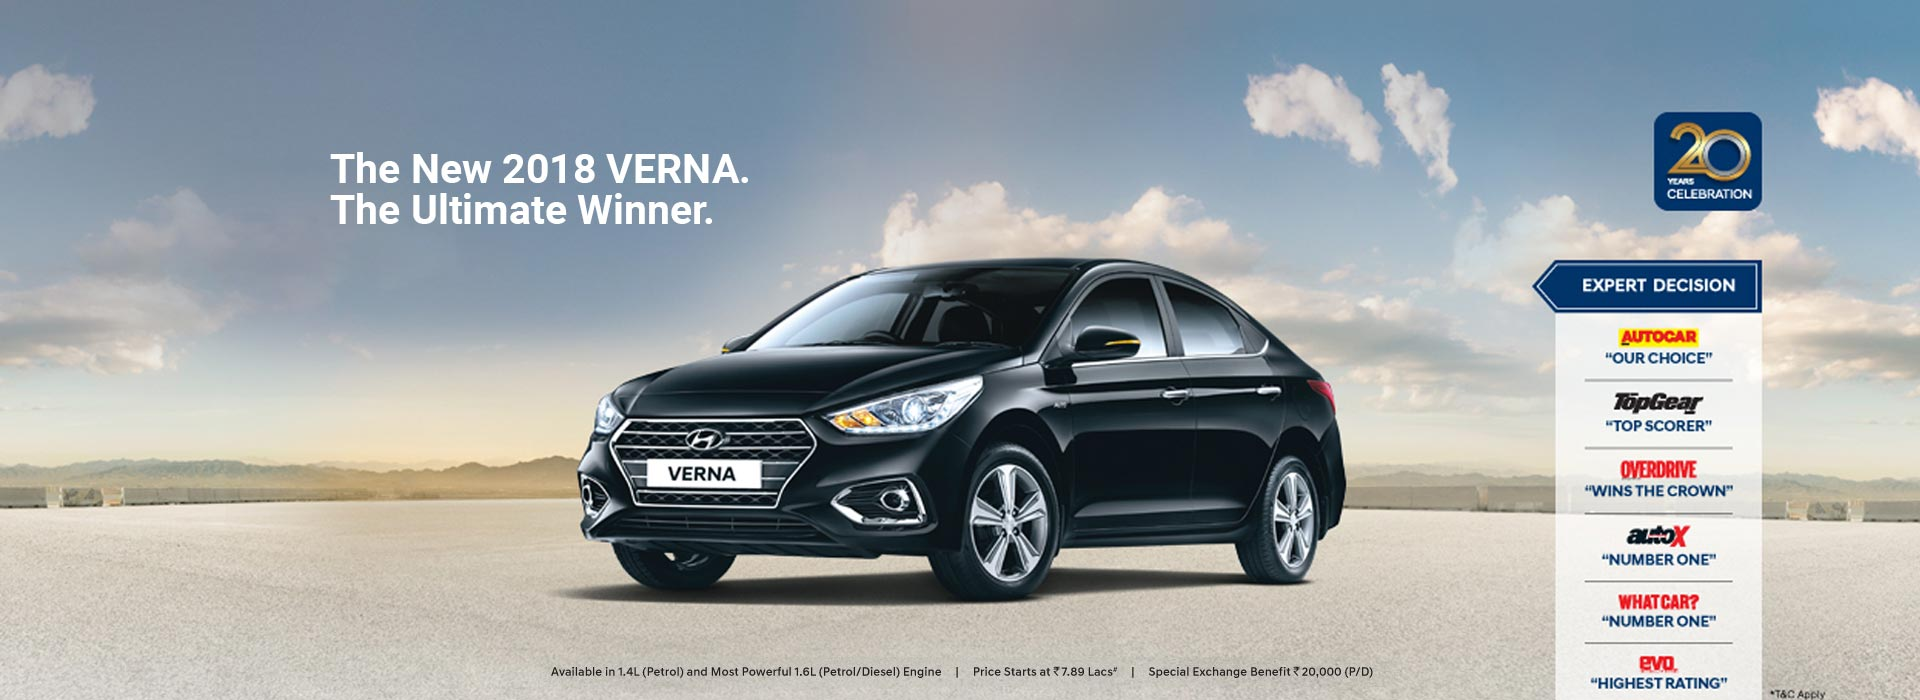 Kun Hyundai: Authorized new car dealership serving and servicing in  Chennai, Tamilnadu